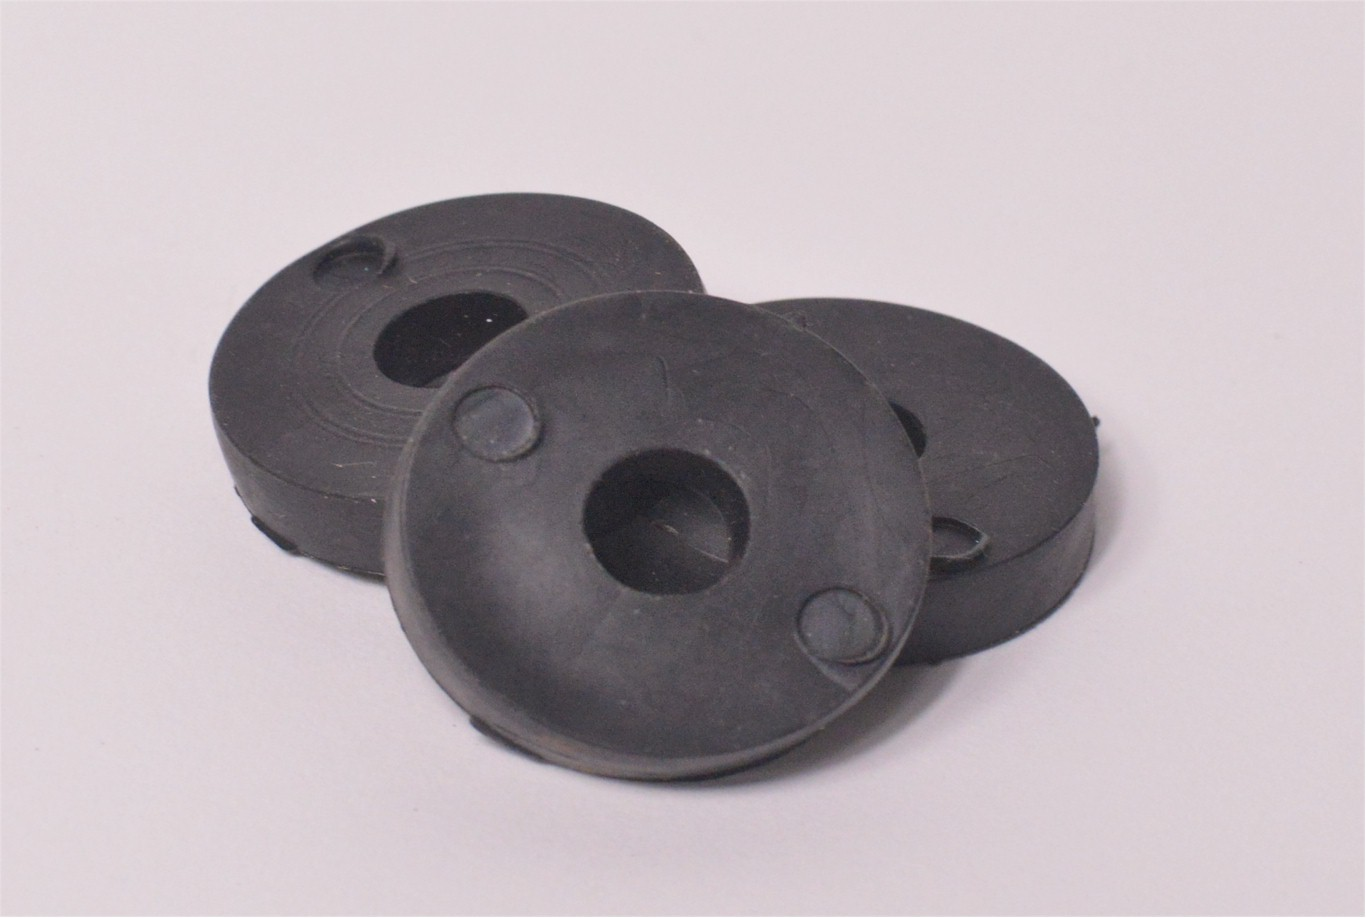 RUBBER GROMMET - Product Image